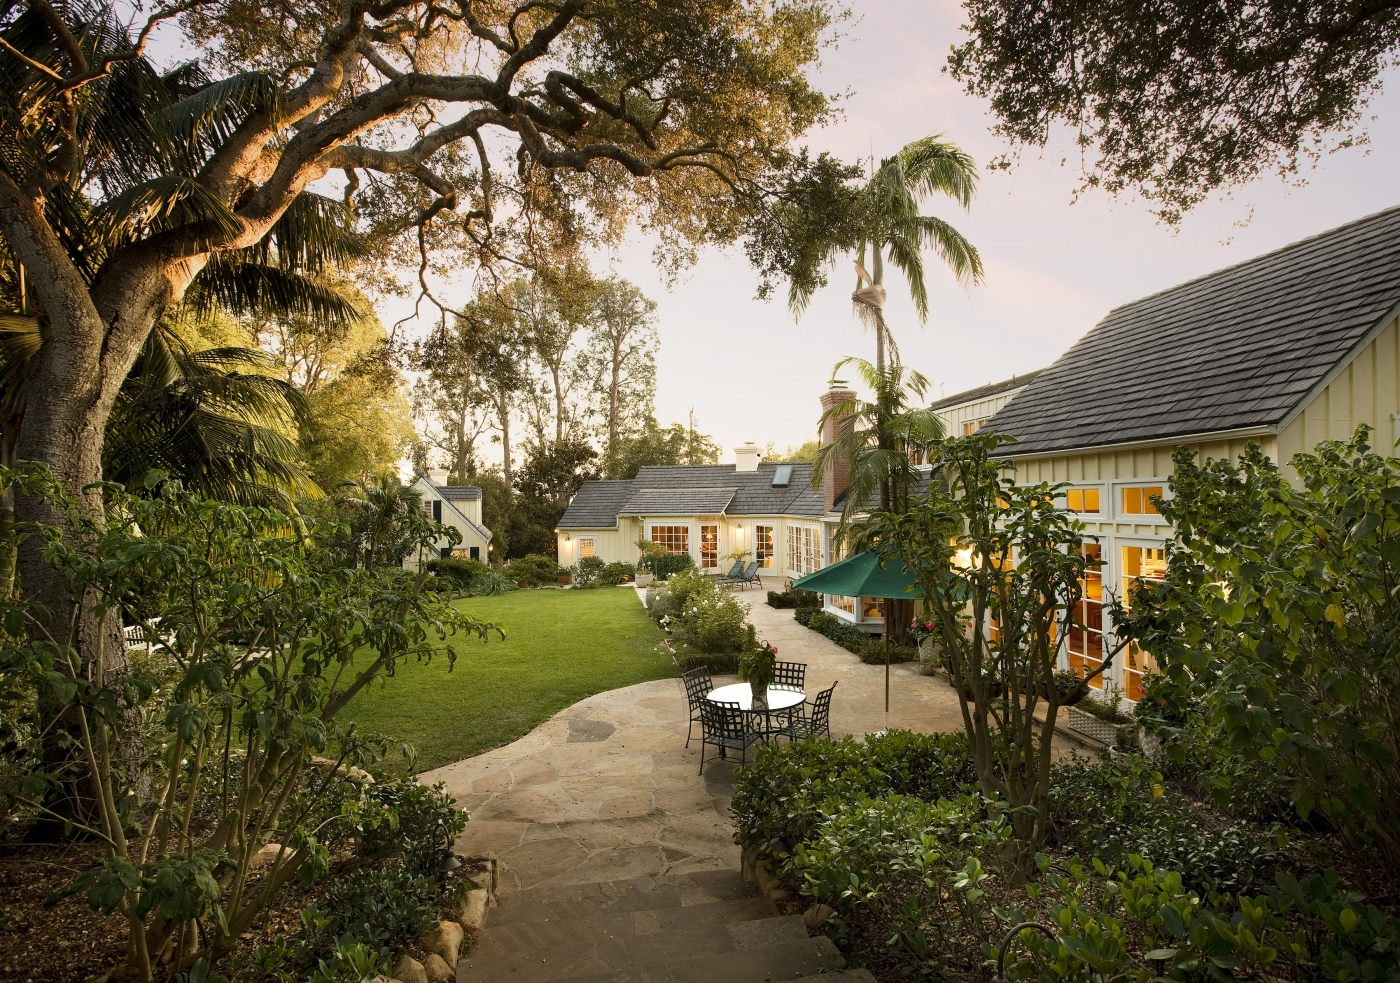 Sprawling Lawns, Lush Landscaping, Spacious Main House & Guest House